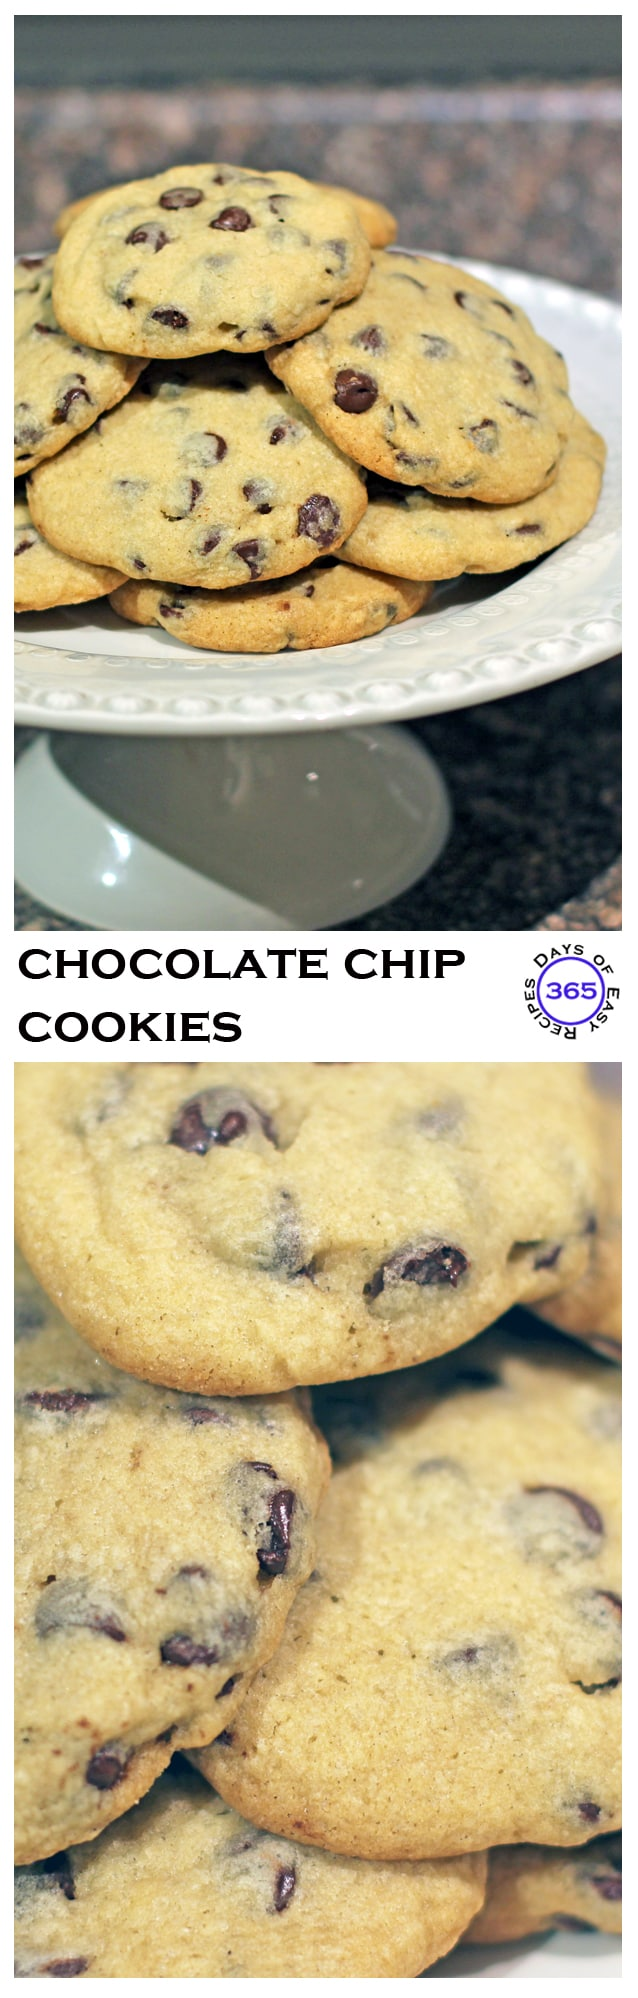 Office Winning Chocolate Chip Cookies - http://365daysofeasyrecipes.com